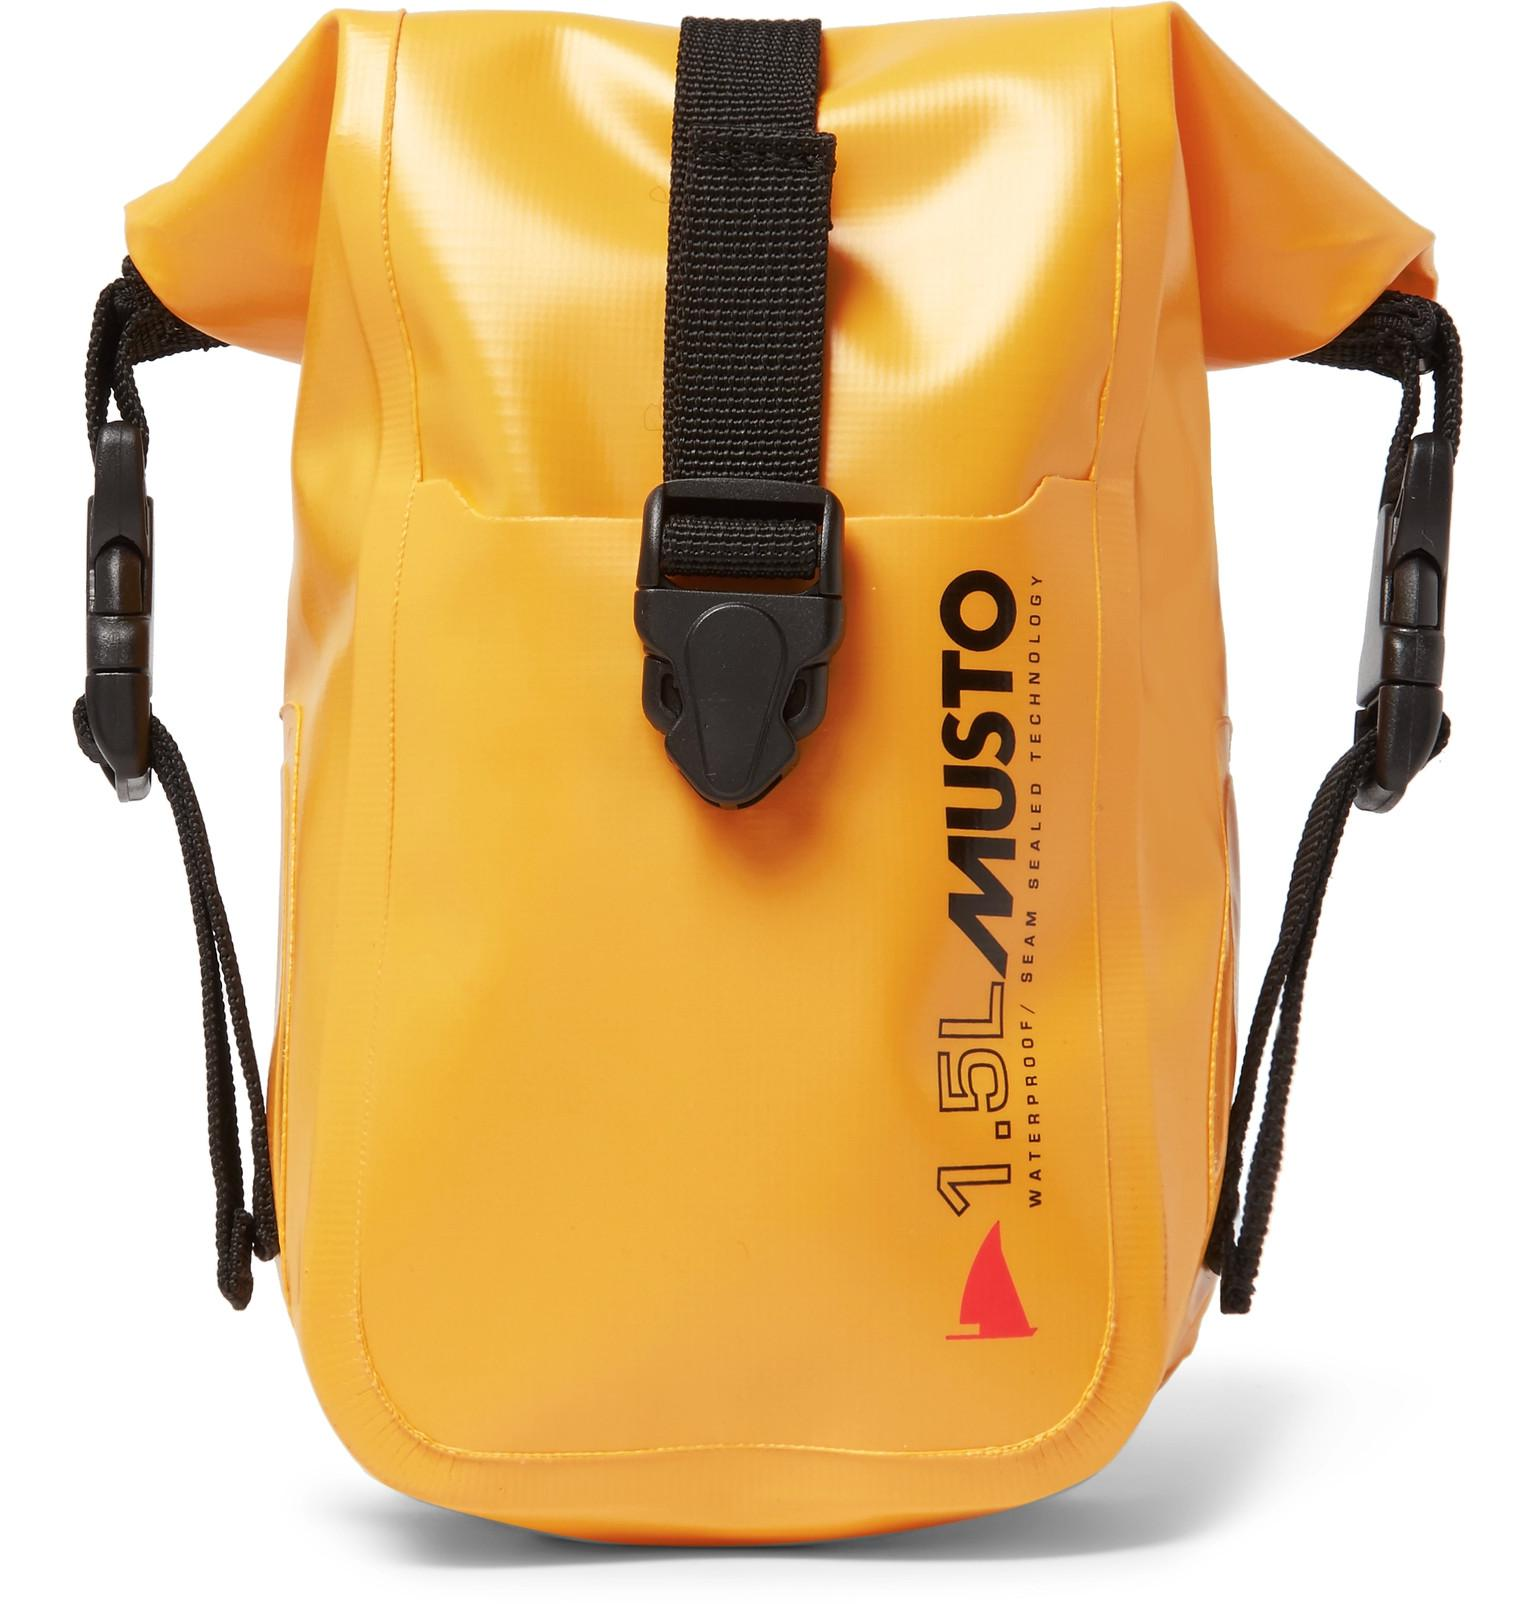 Lyst - Musto Sailing 1.5l Waterproof Dry Pack in Yellow for Men 75b313b6a01f9